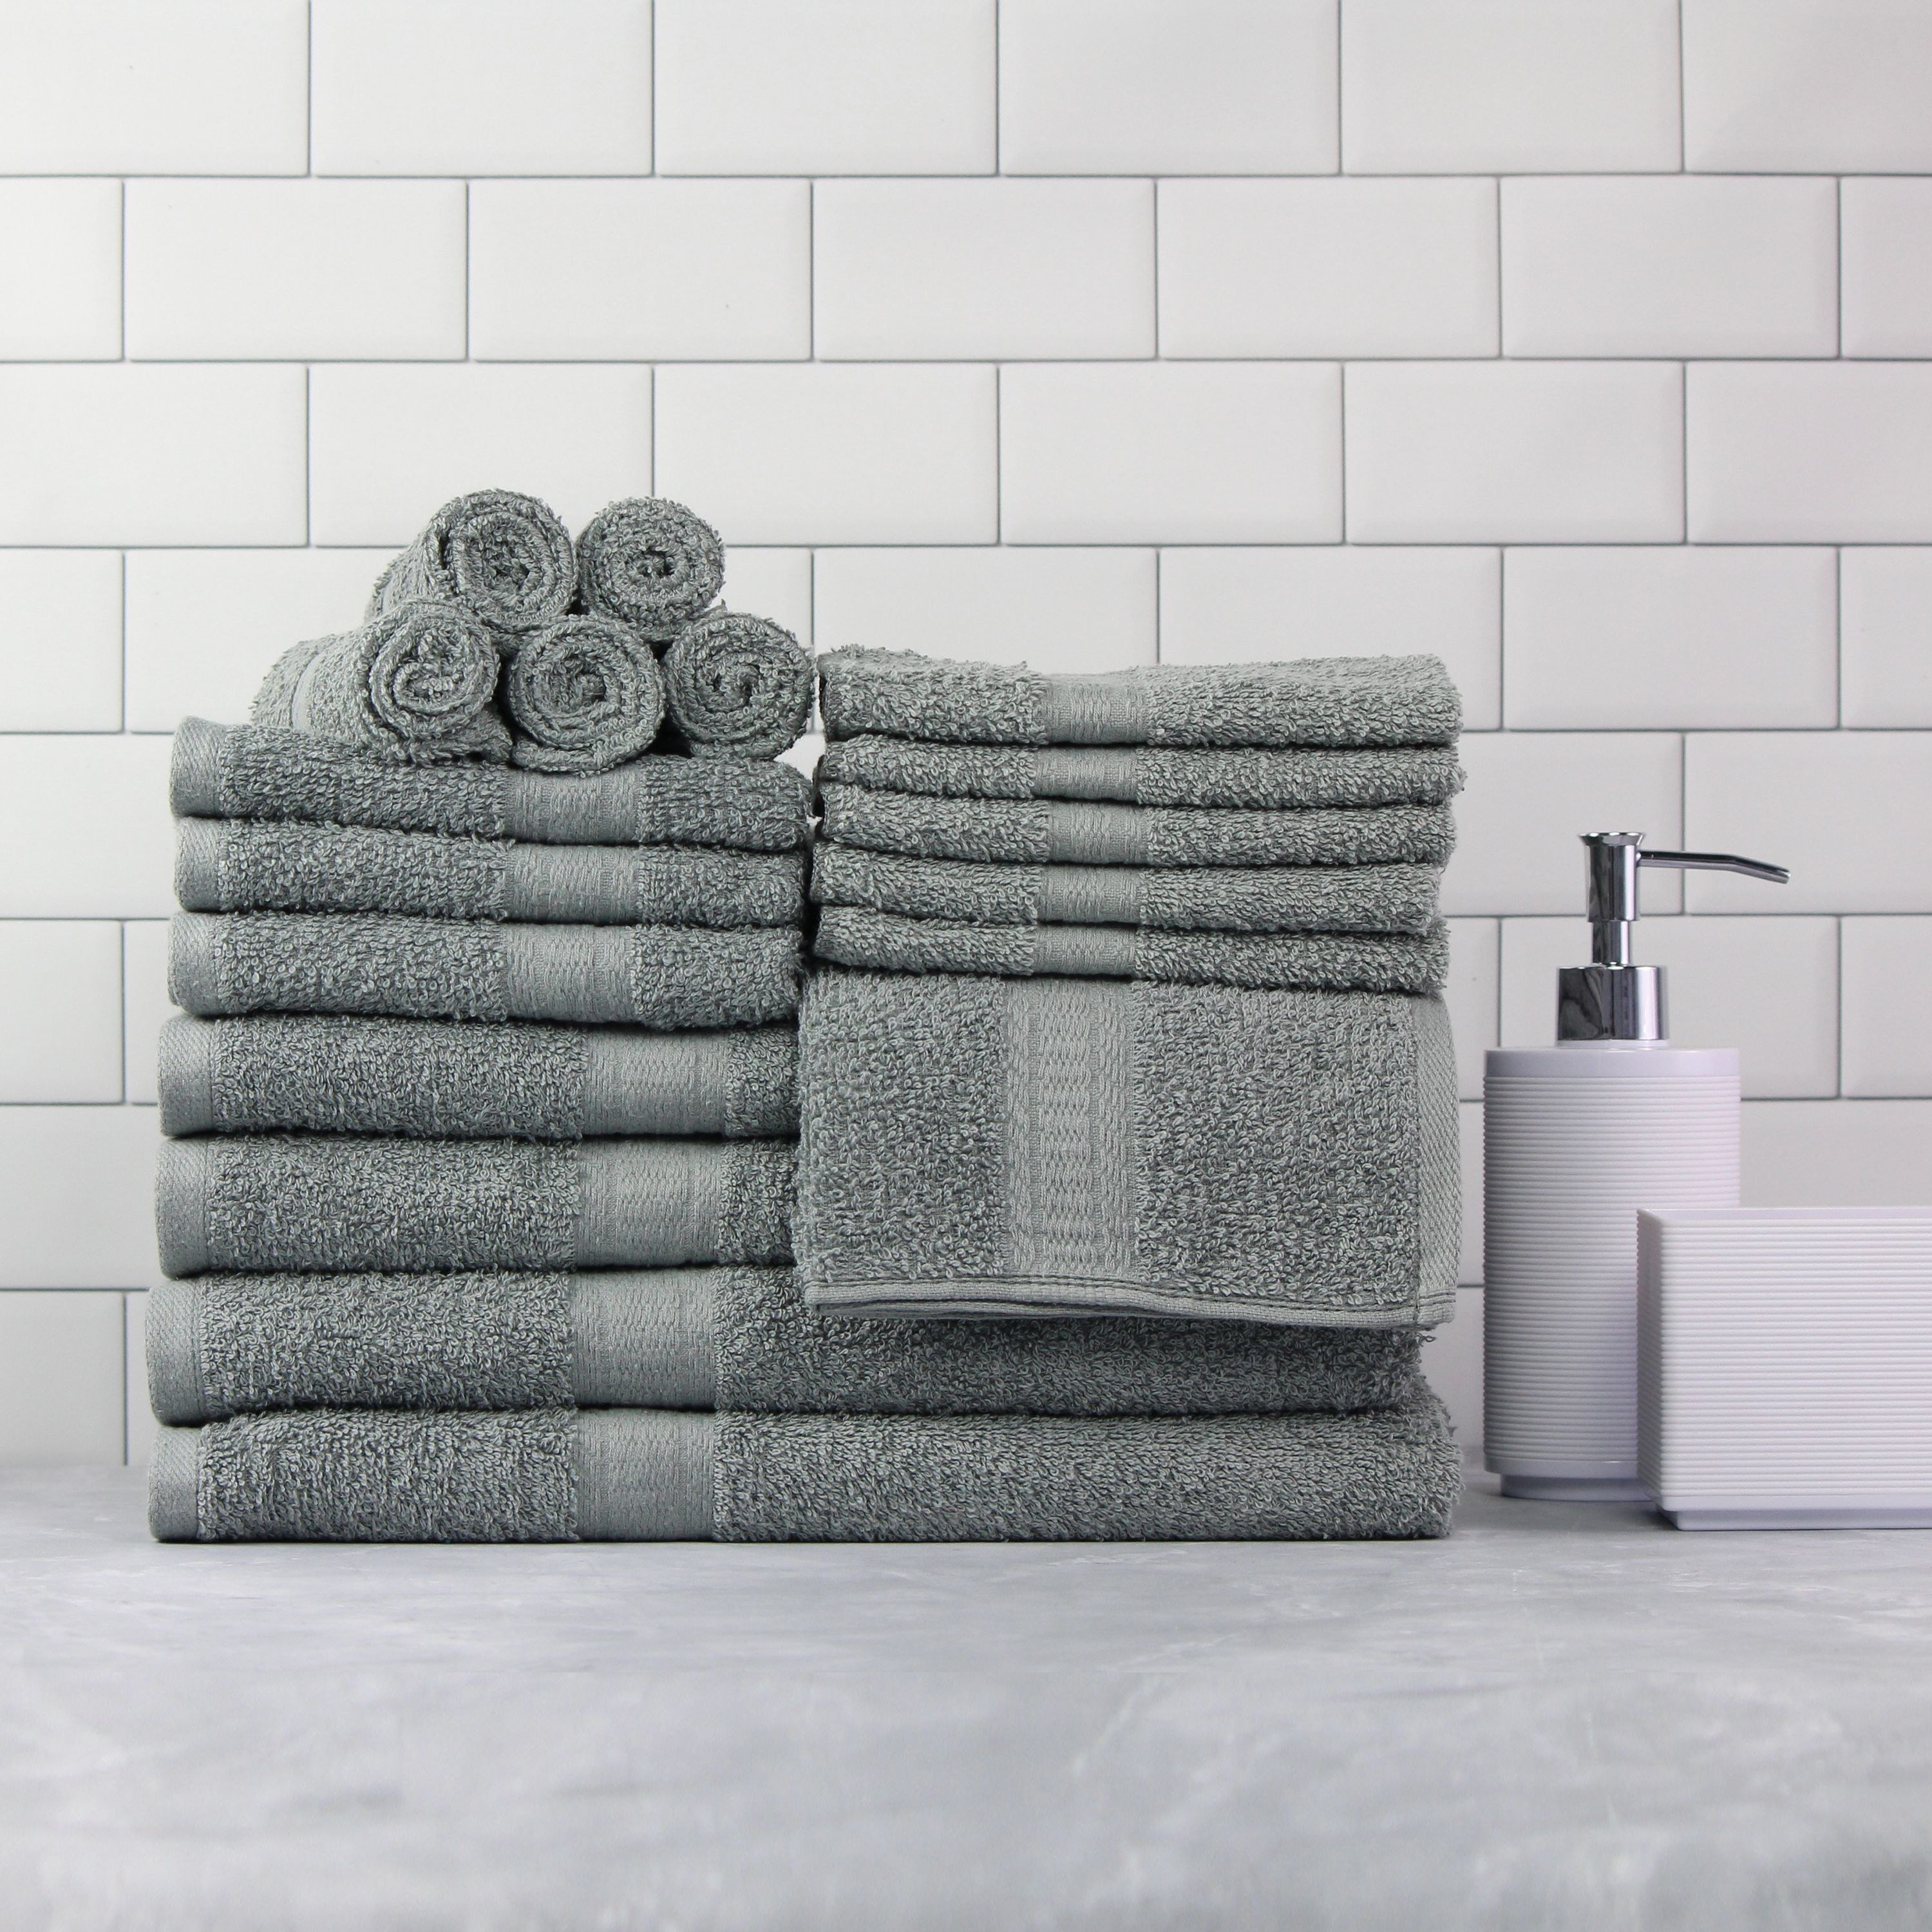 18 gray towels folded up on an counter